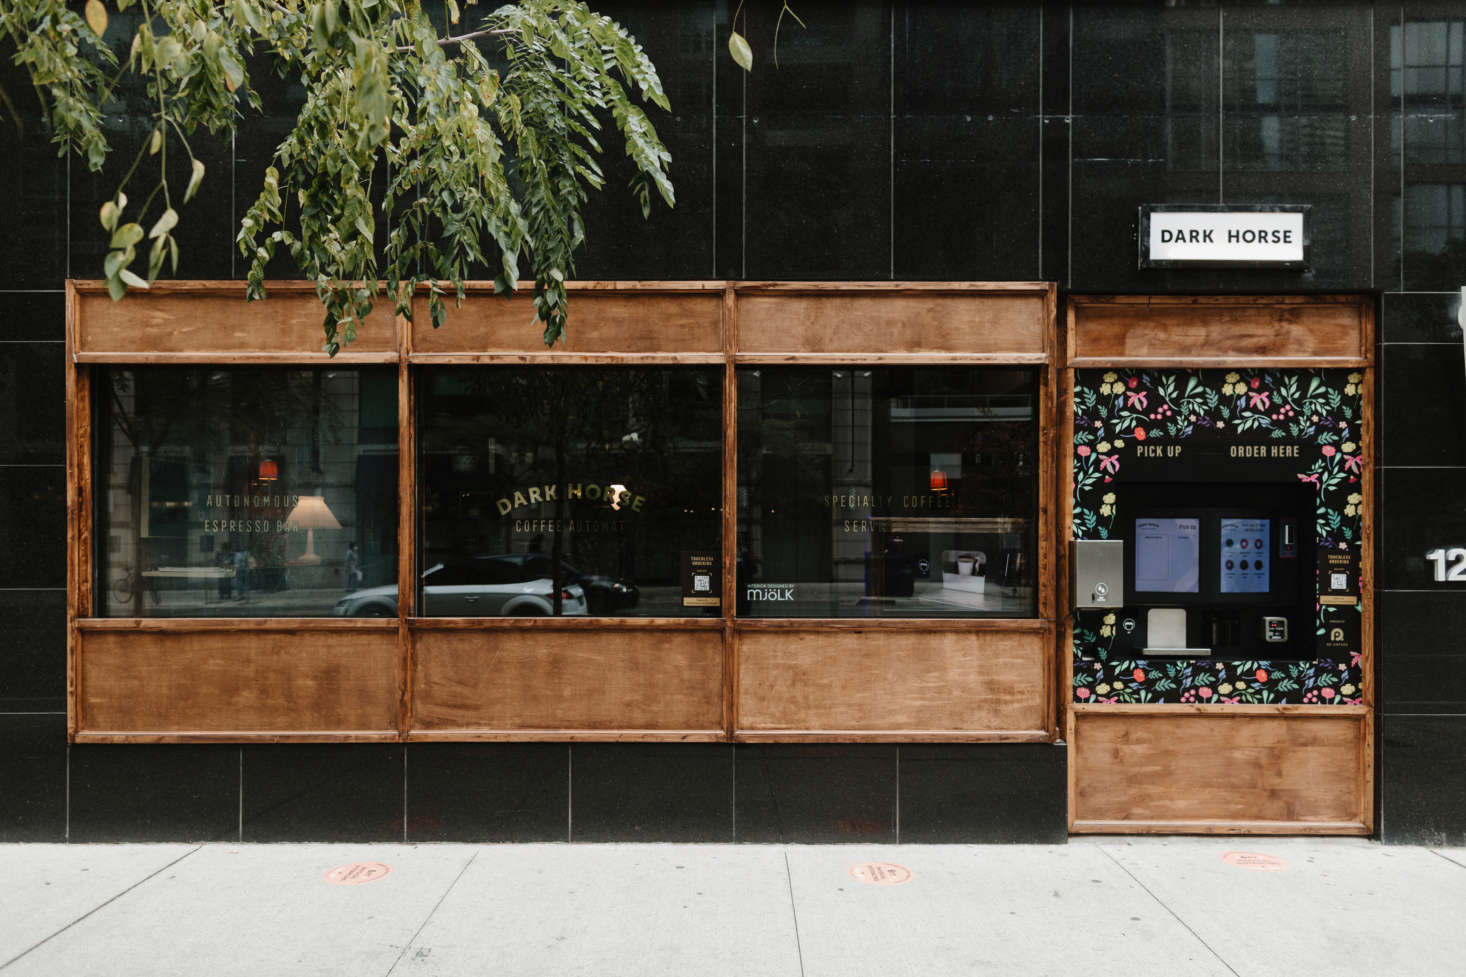 The facade features an outdoor ordering station; passersby can peer through the window at the stage-set-like coffee shop interior.